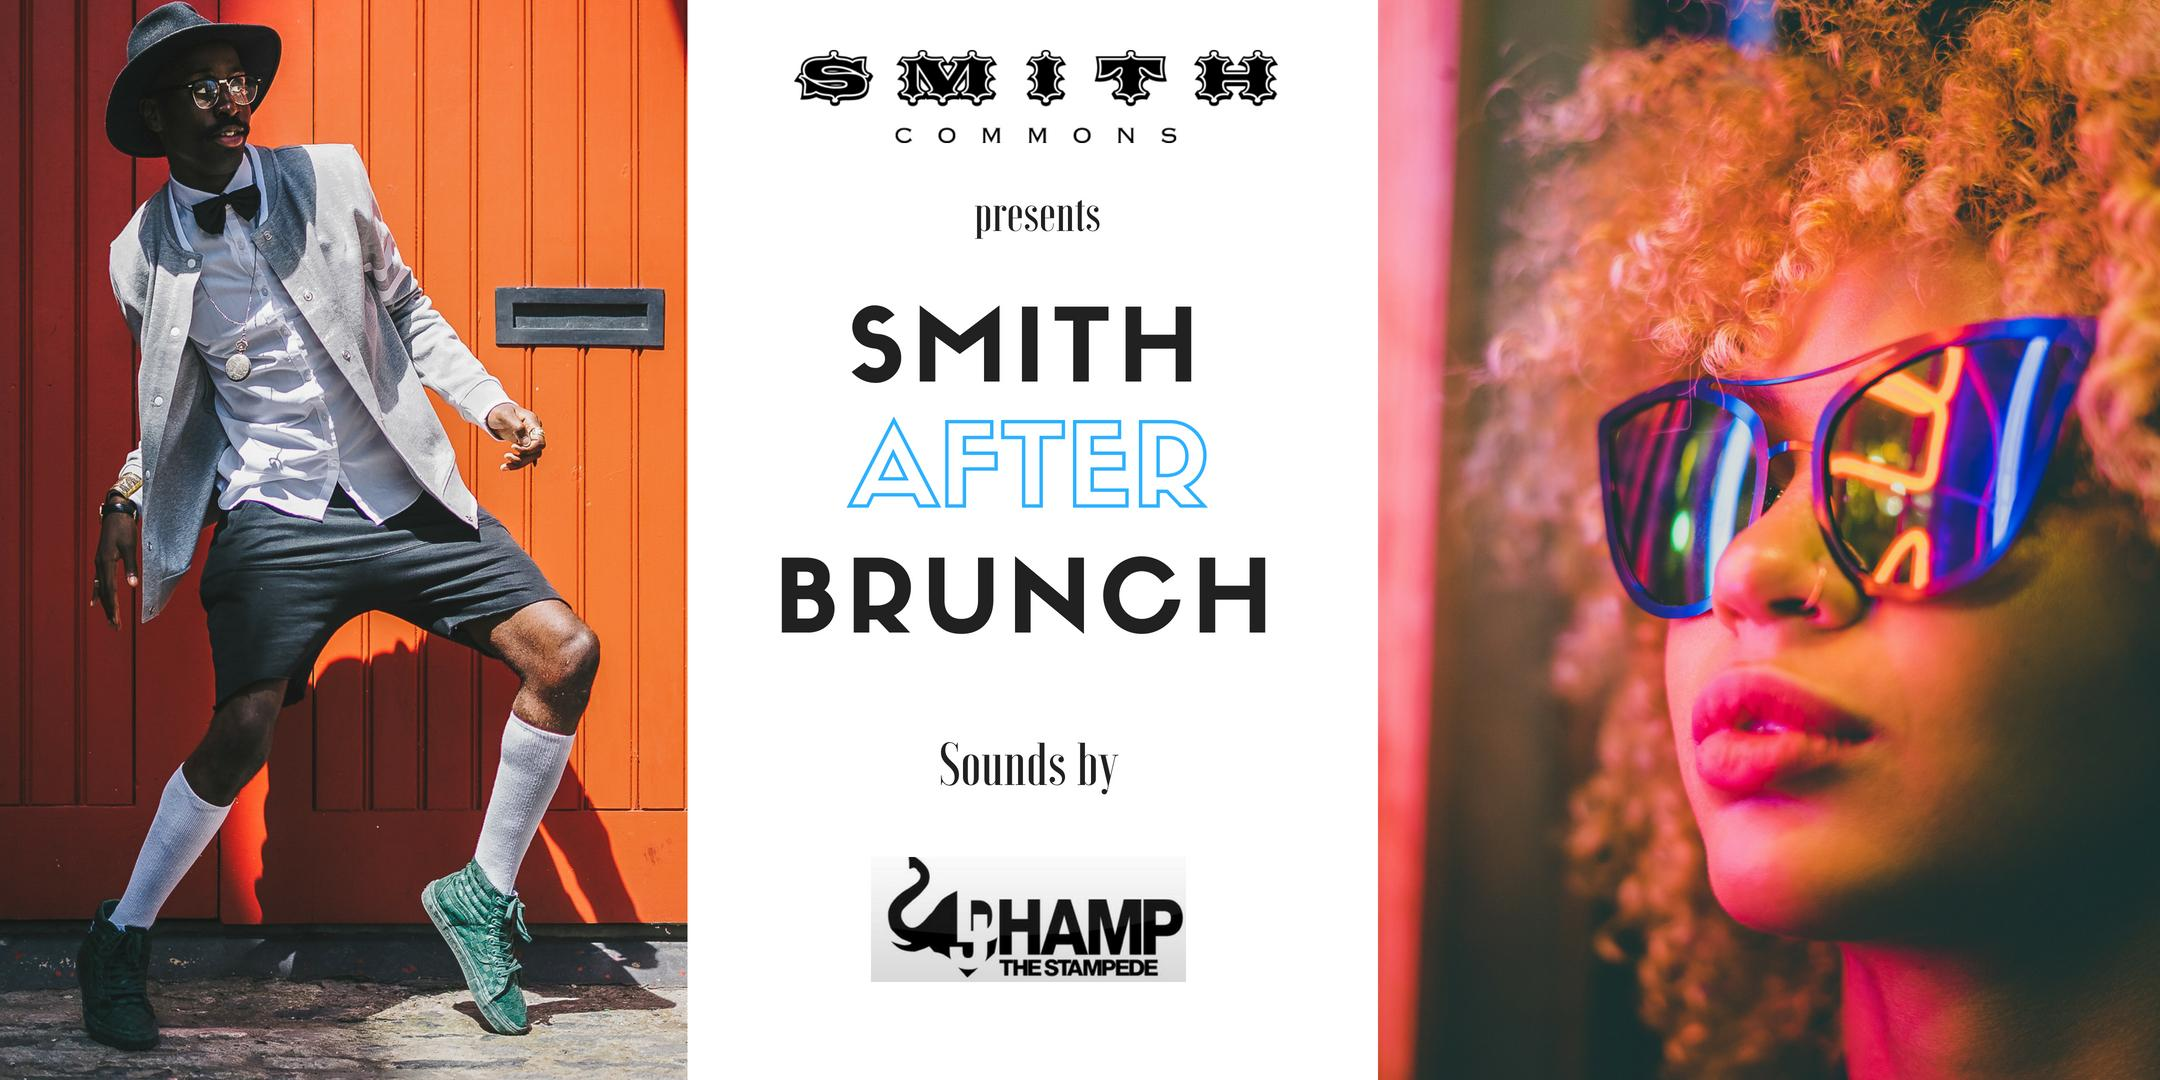 SMITH AFTER BRUNCH